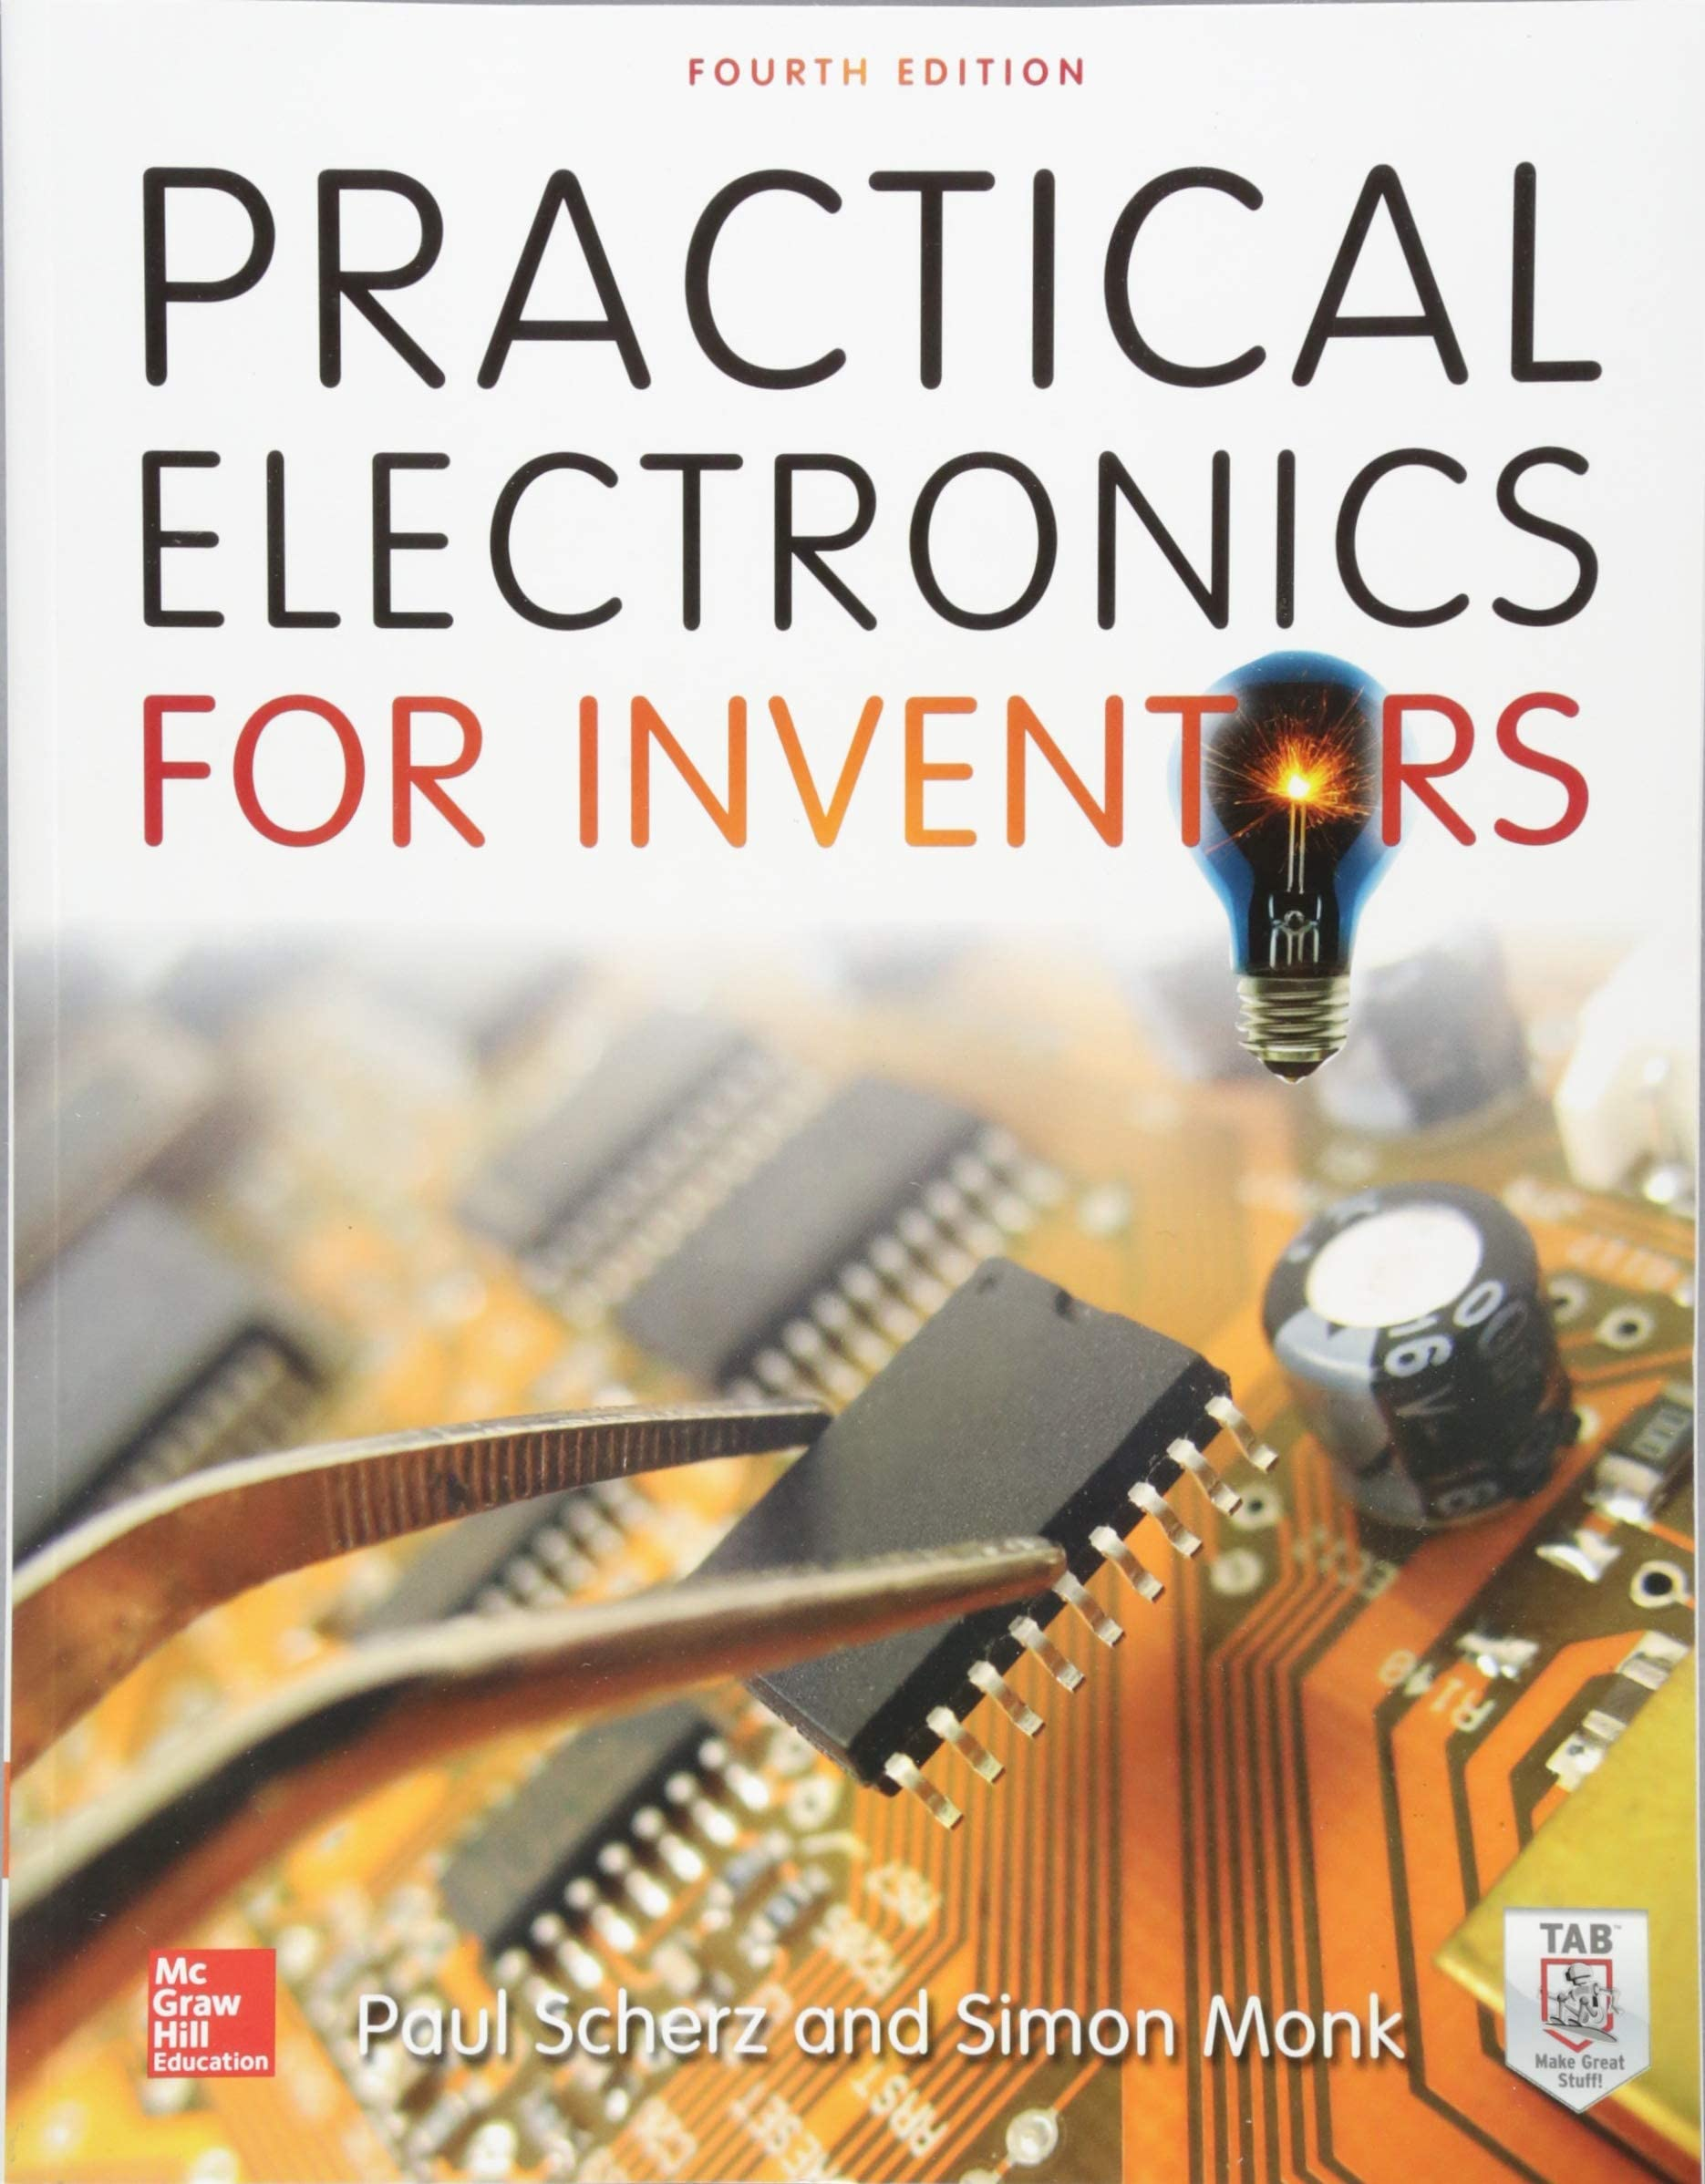 amazon com circuits electrical \u0026 electronics books designpractical electronics for inventors, fourth edition